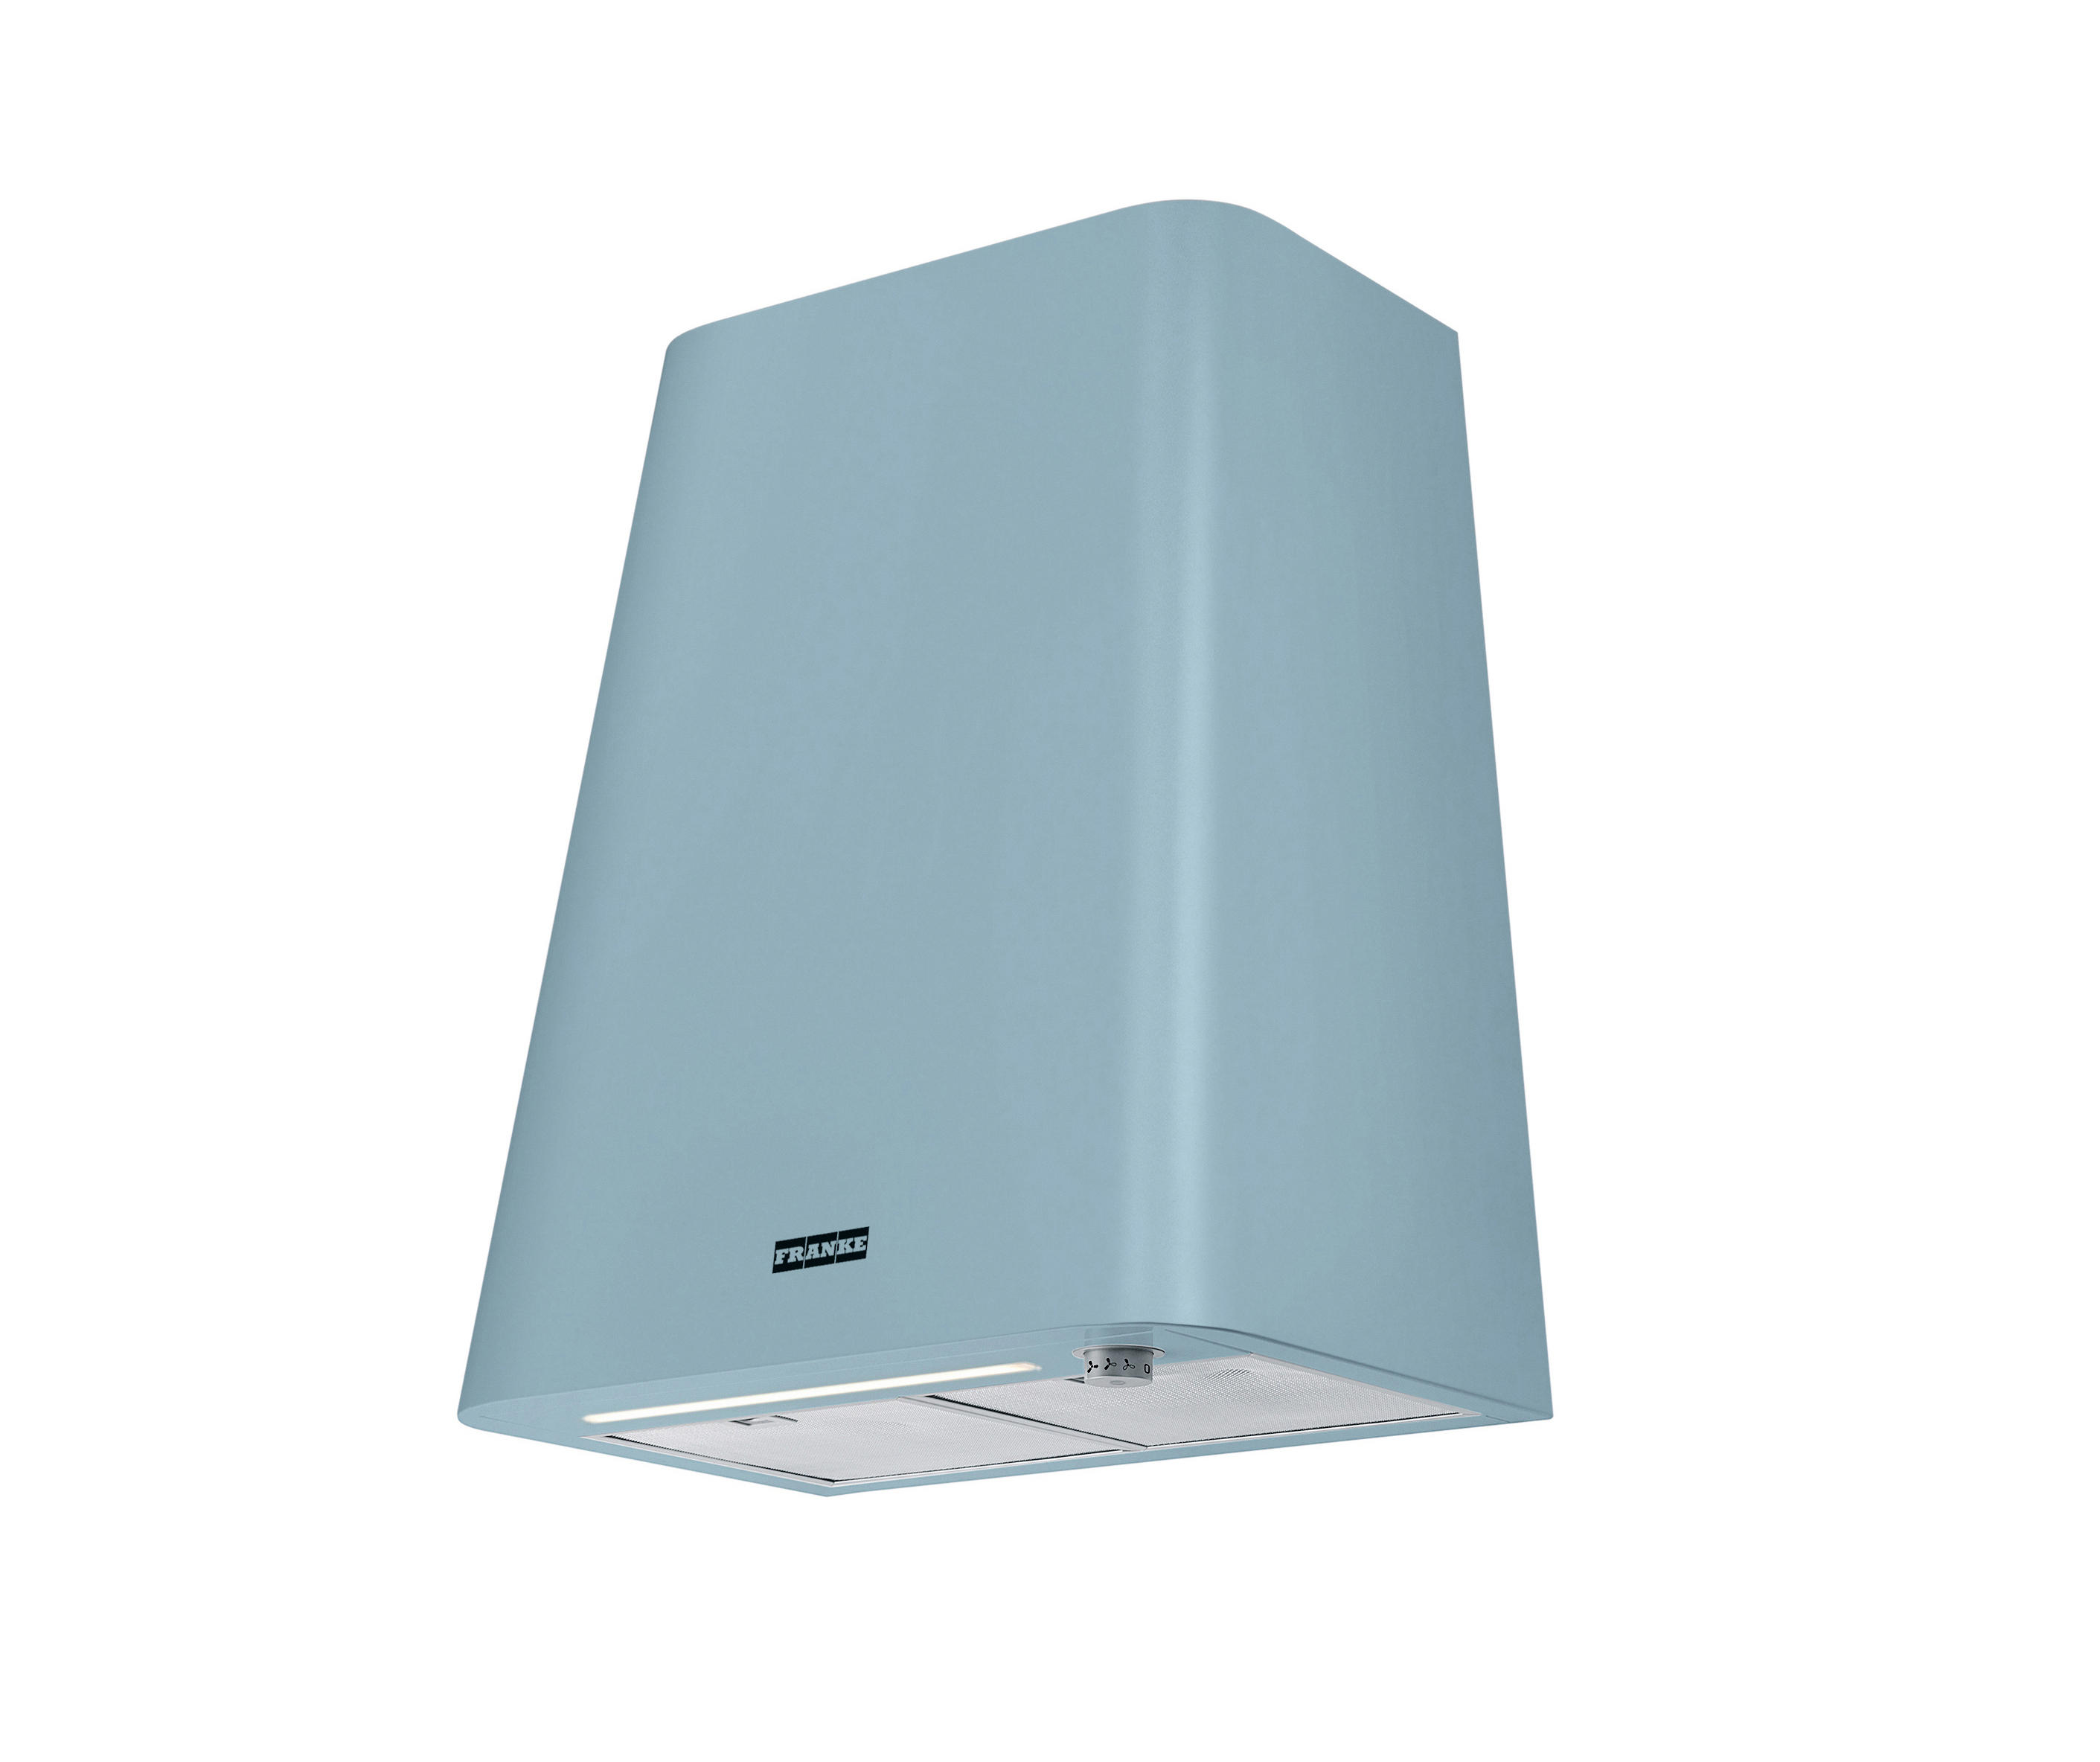 Smart Deco Hood FSMD 508 BL Matt Smokey Blue | Architonic